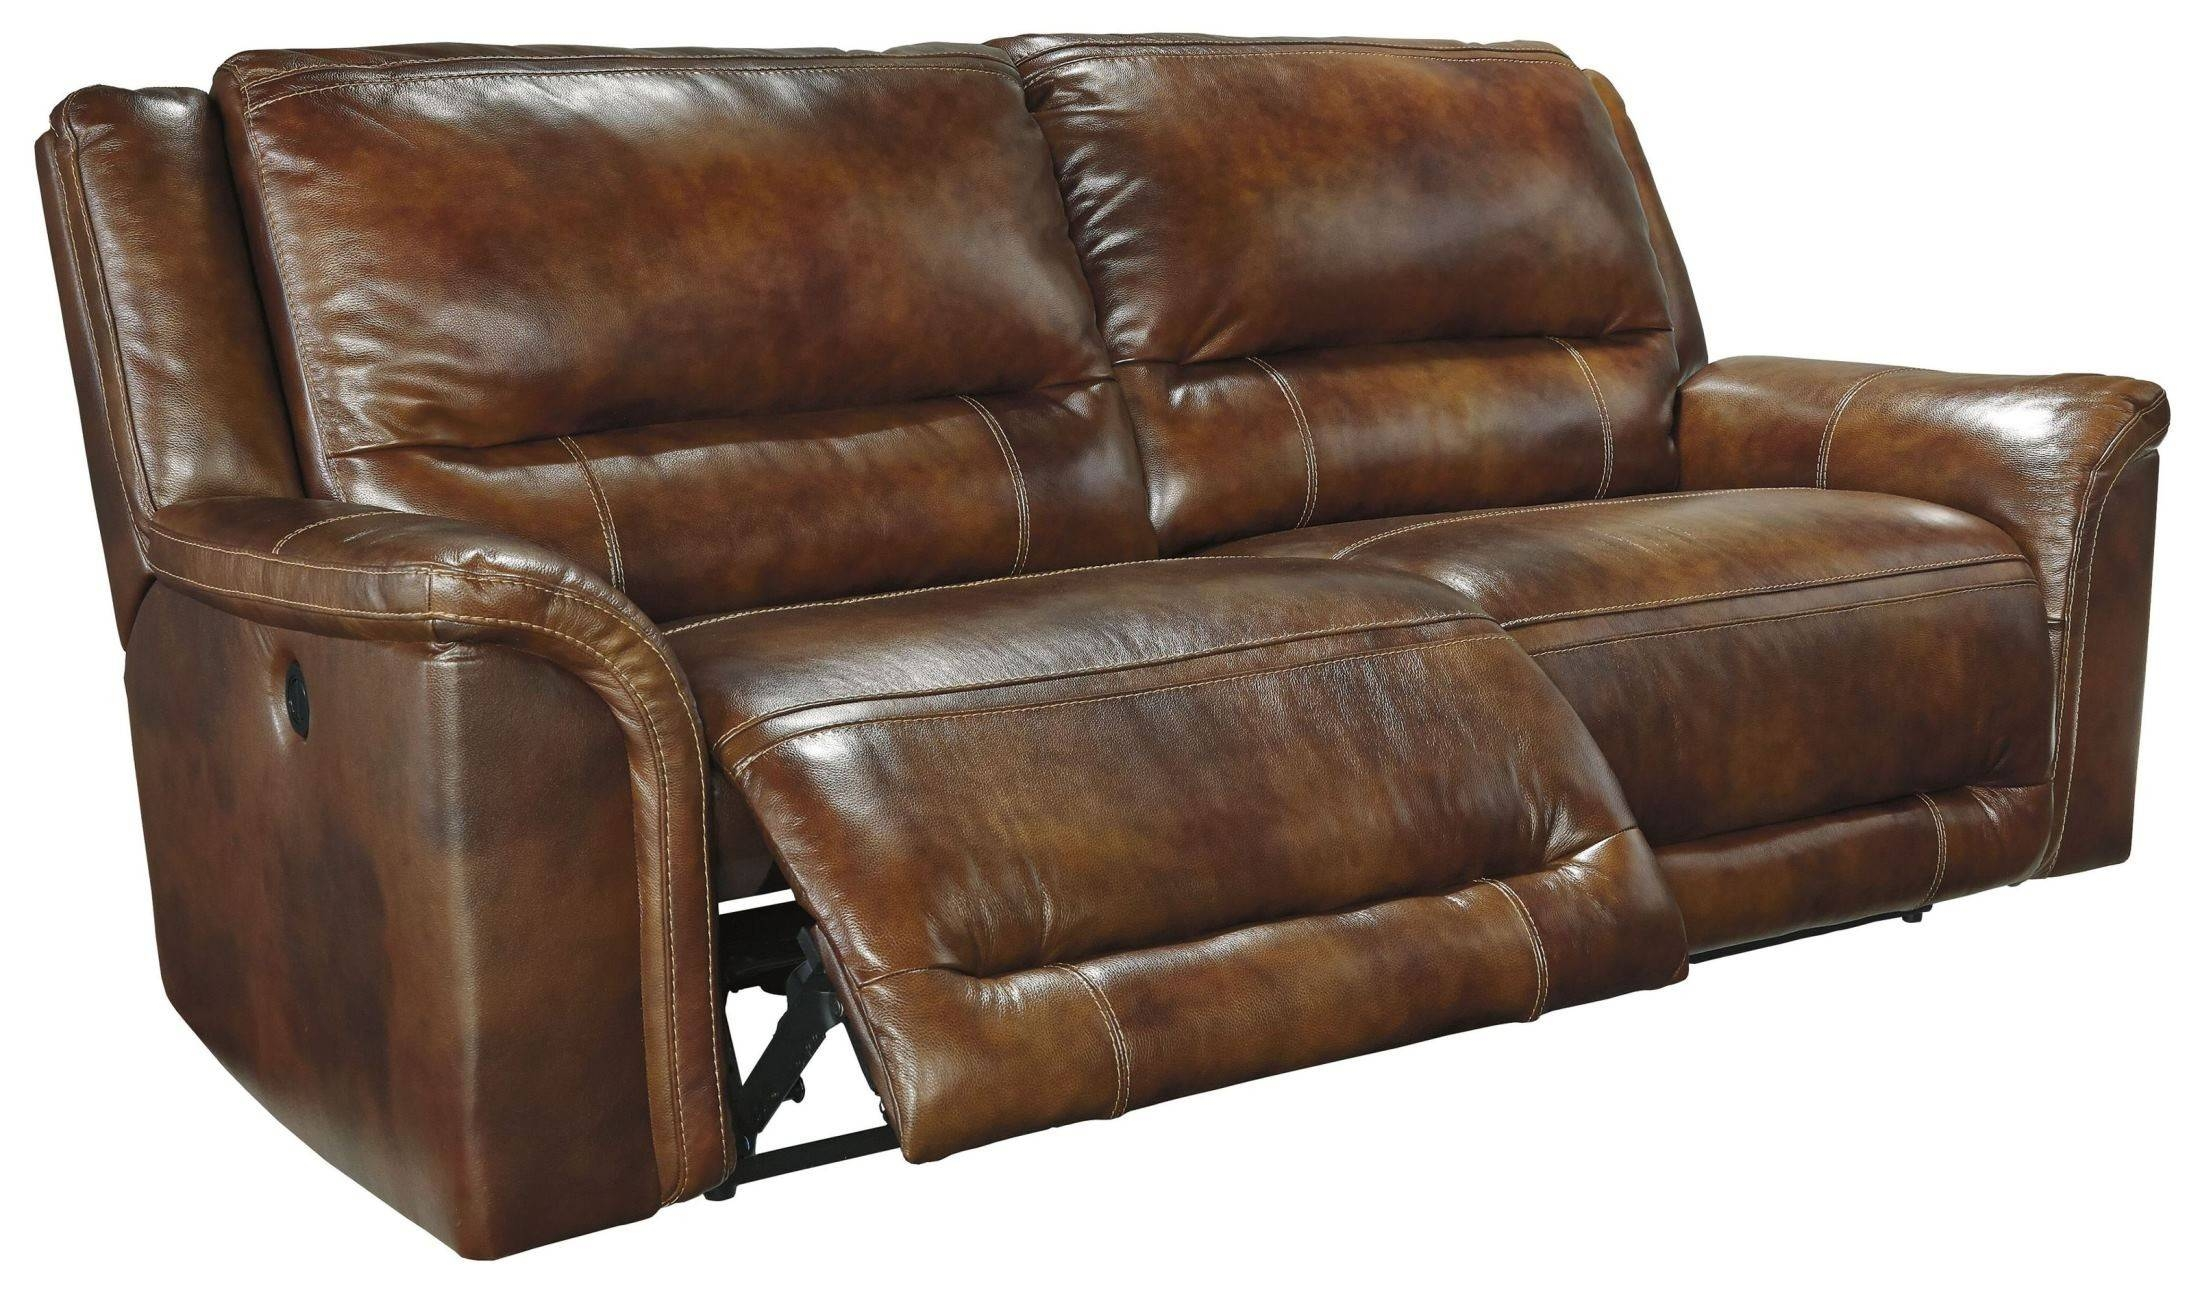 Jayron Harness 2 Seat Power Reclining Sofa From Ashley (u7660047 Pertaining To 2 Seater Recliner Leather Sofas (View 8 of 30)